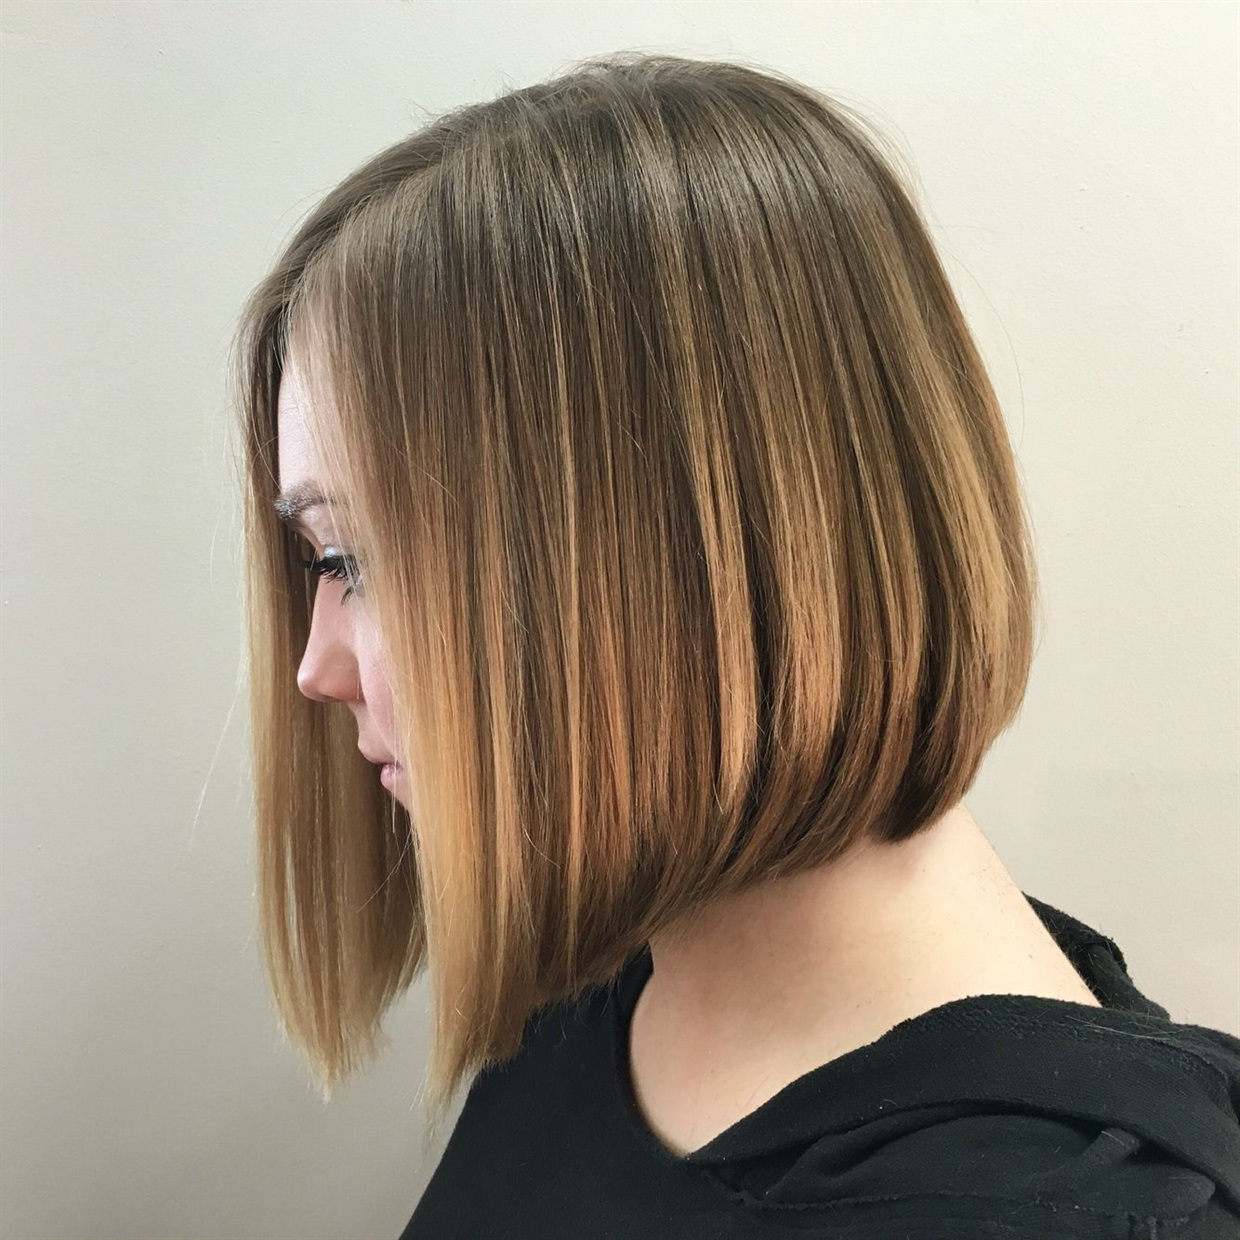 Mid-Lenght Bob Hairstyles for 2021